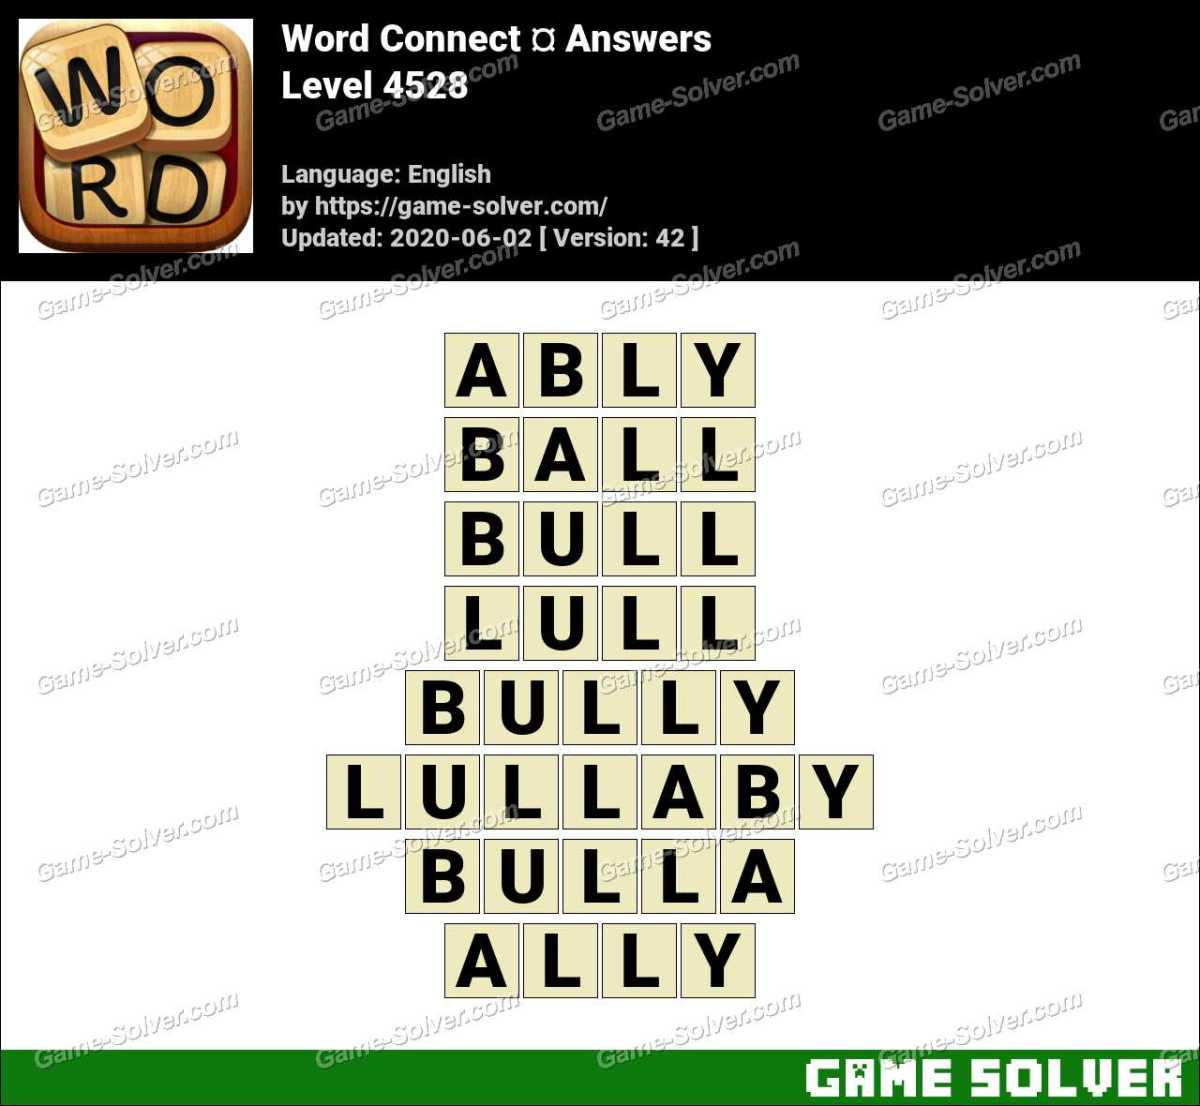 Word Connect Level 4528 Answers